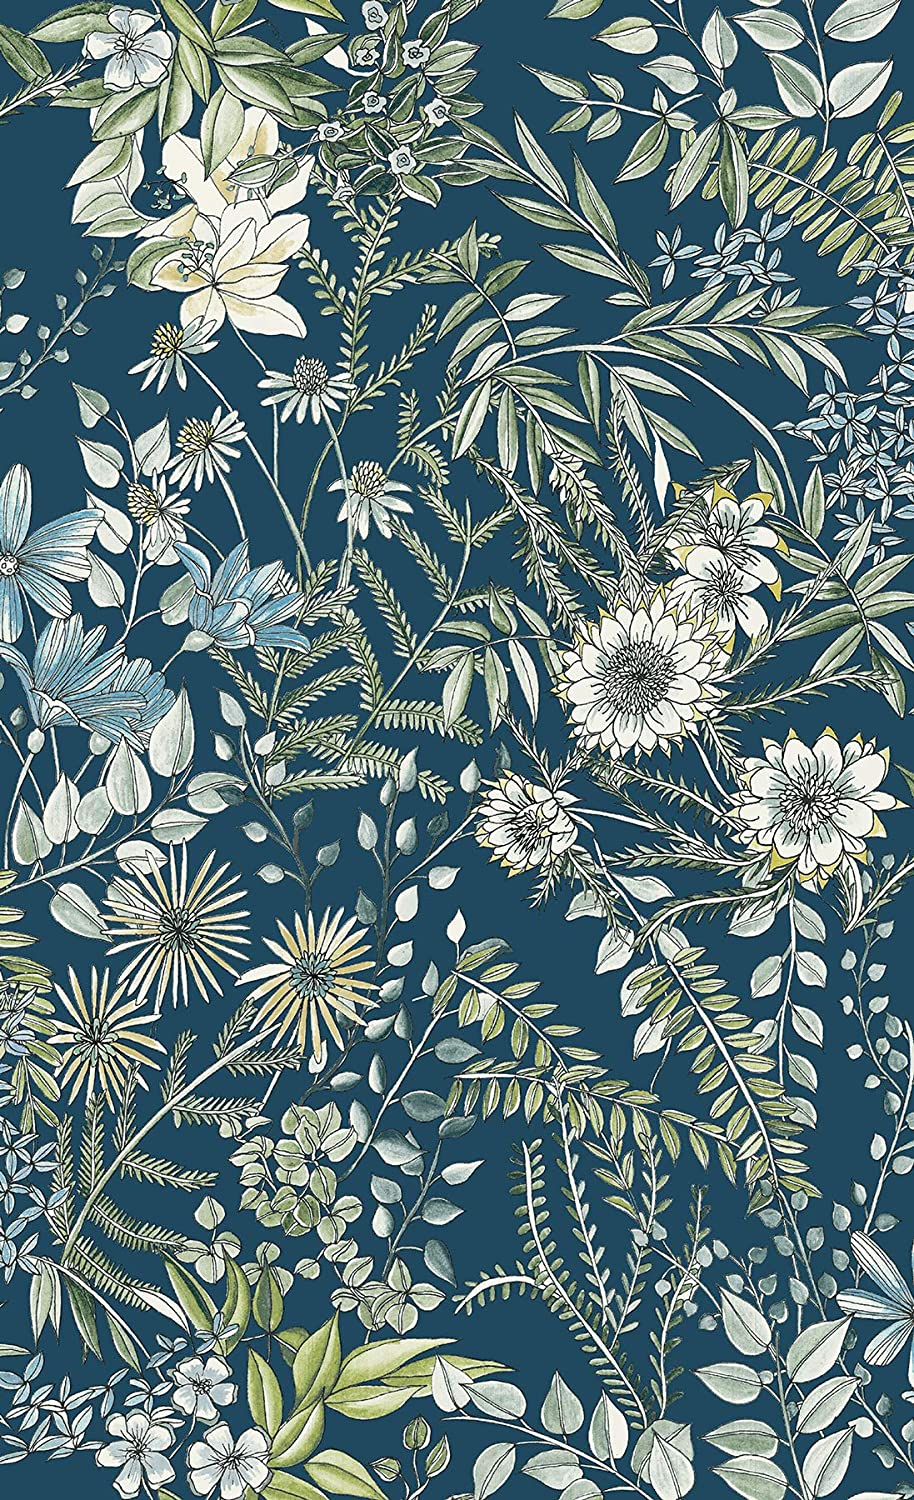 A Street Prints 2821 12902 Full Bloom Navy Floral Wallpaper